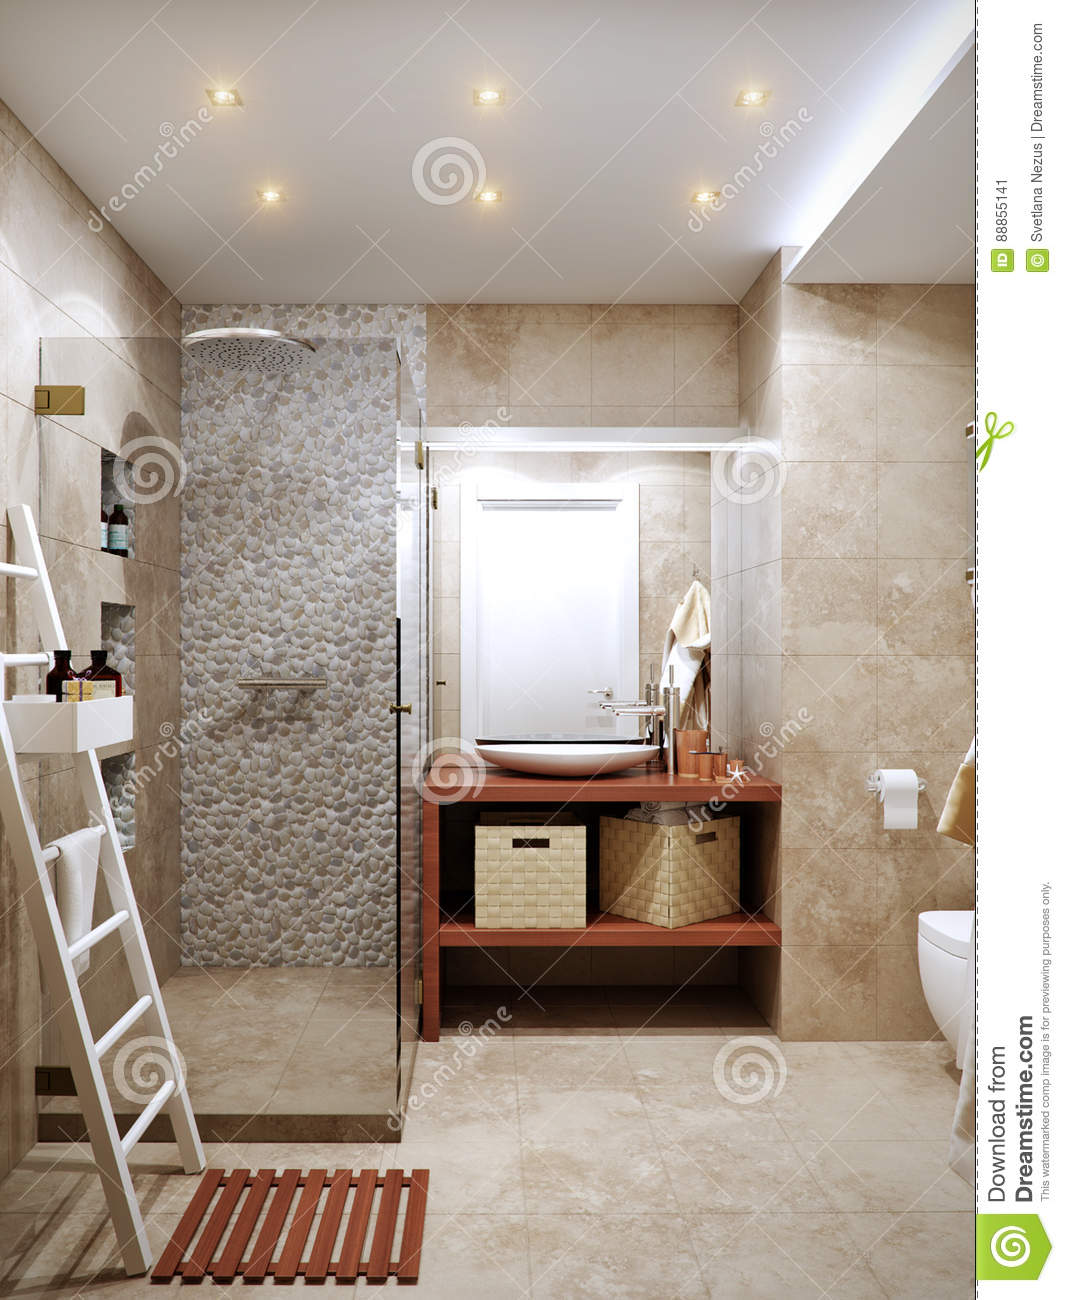 Modern Bathroom Interior With Stone Travertine Tiles Stock